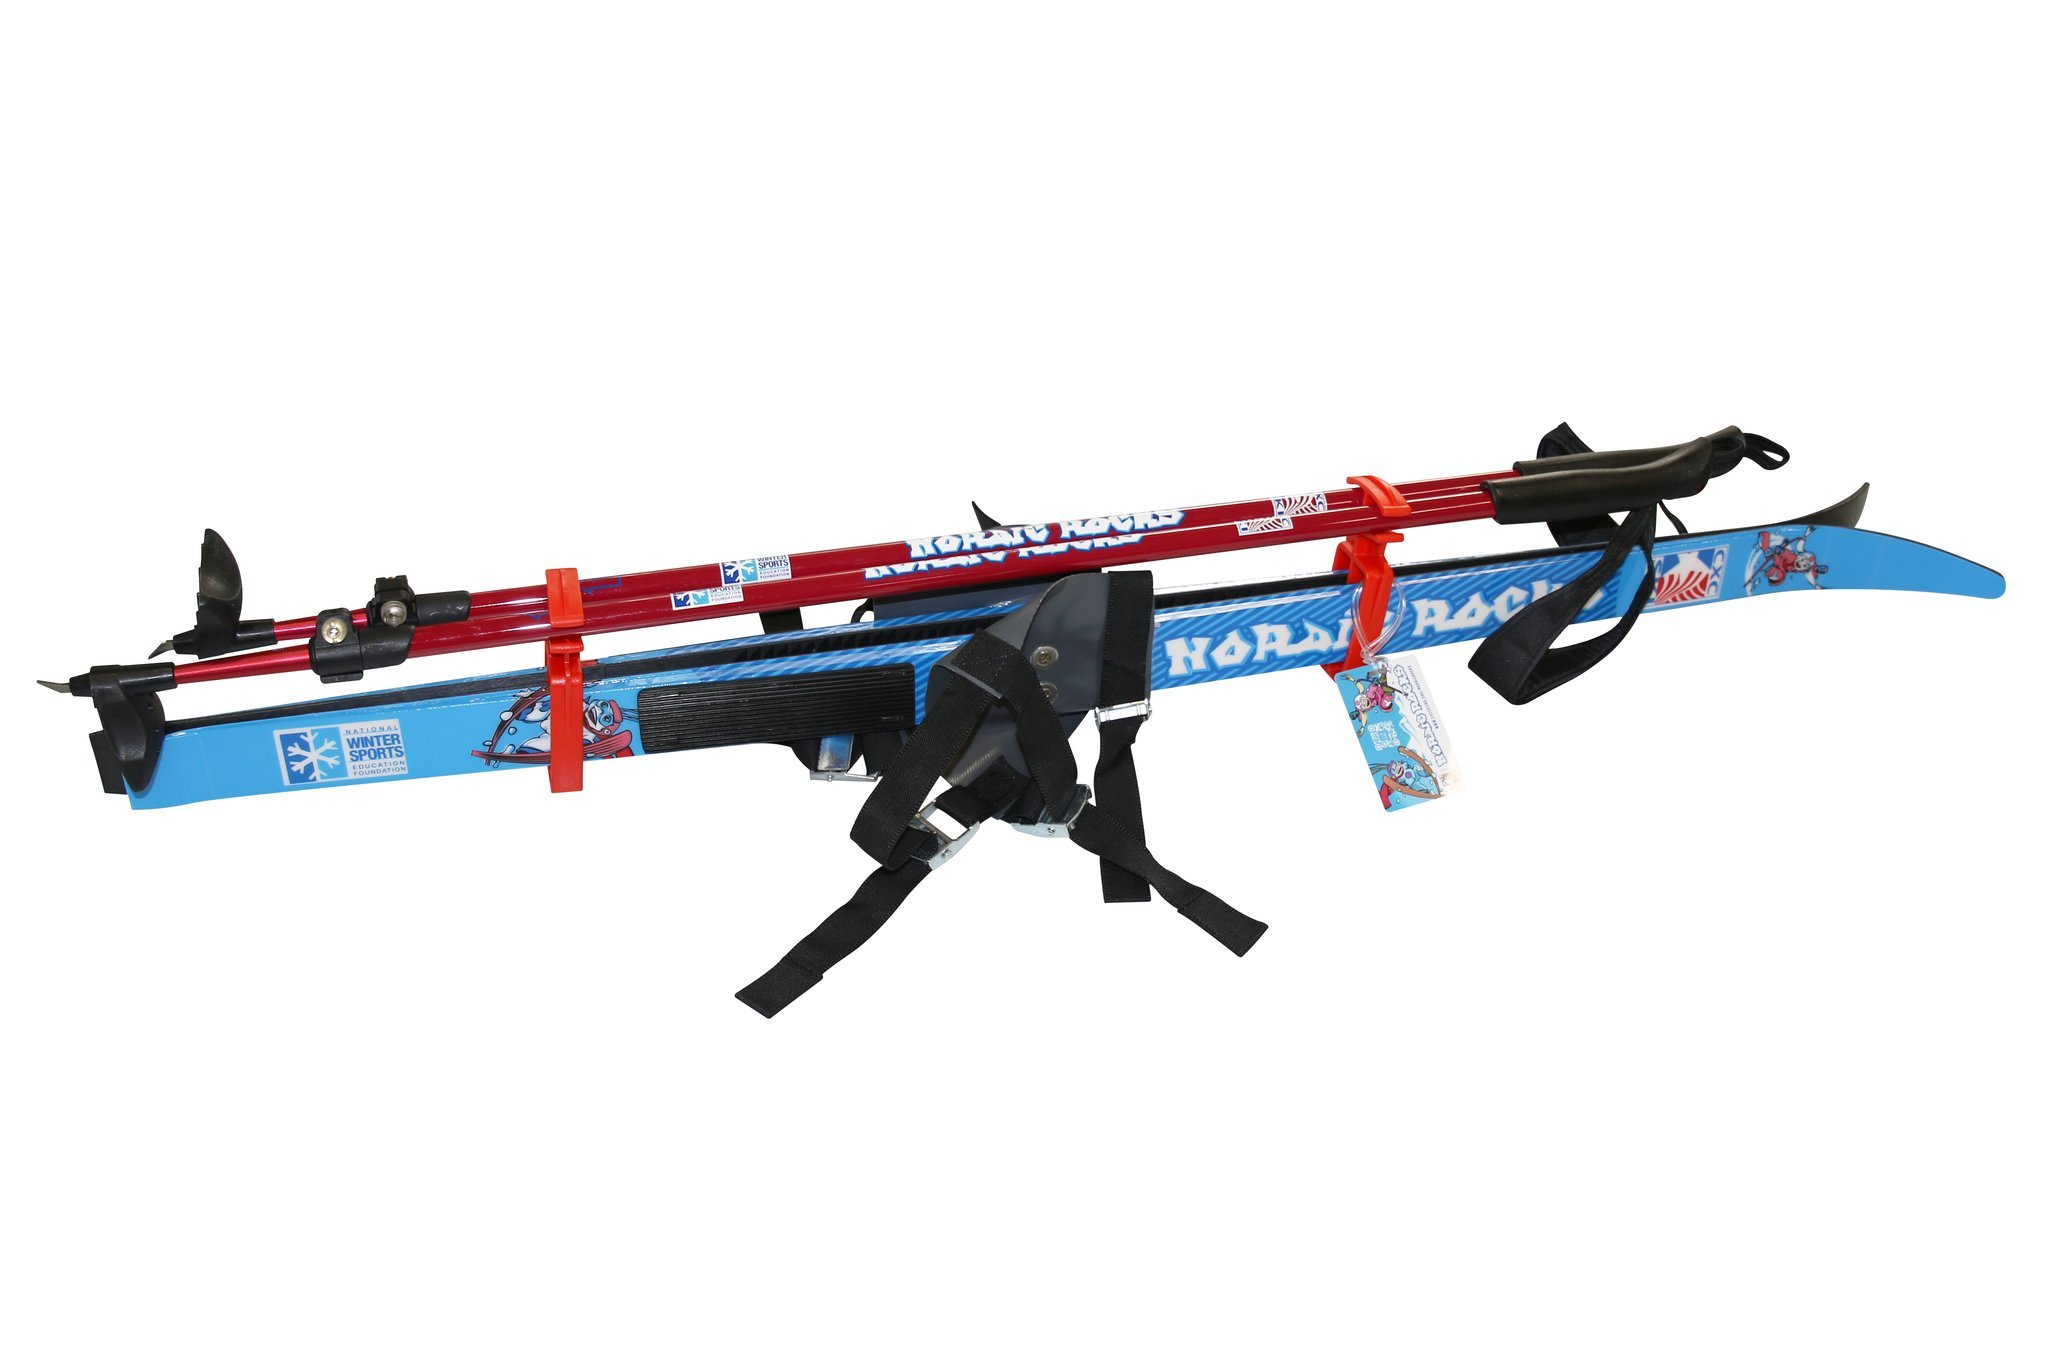 Nordic Rocks Kid's XC Skis and Poles - 47 inch youth skis with step-in bindings and adjustable poles by Nordic Rocks